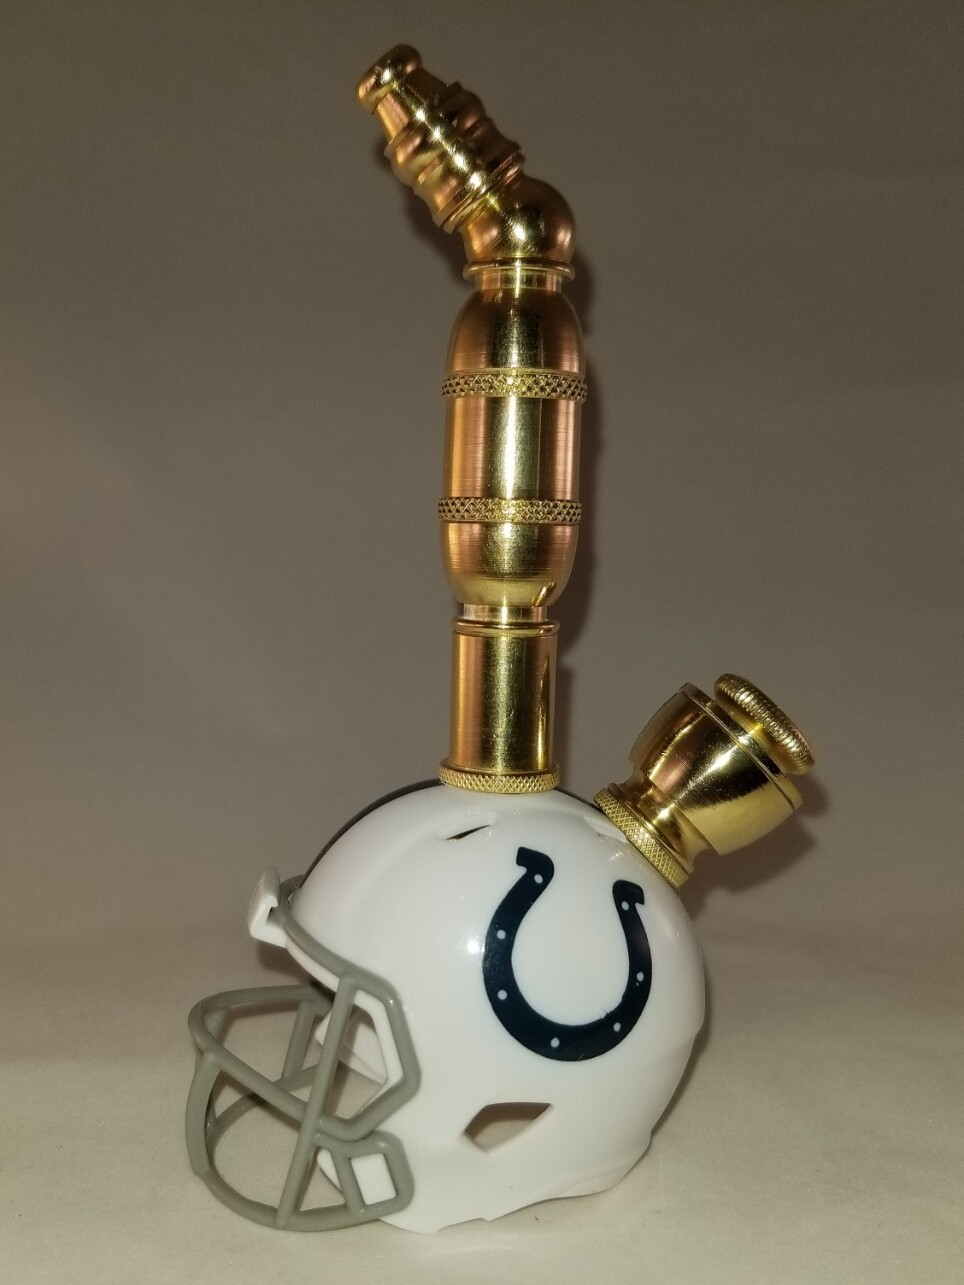 INDIANAPOLIS COLTS NFL FOOTBALL HELMET SMOKING PIPE Upright/Brass